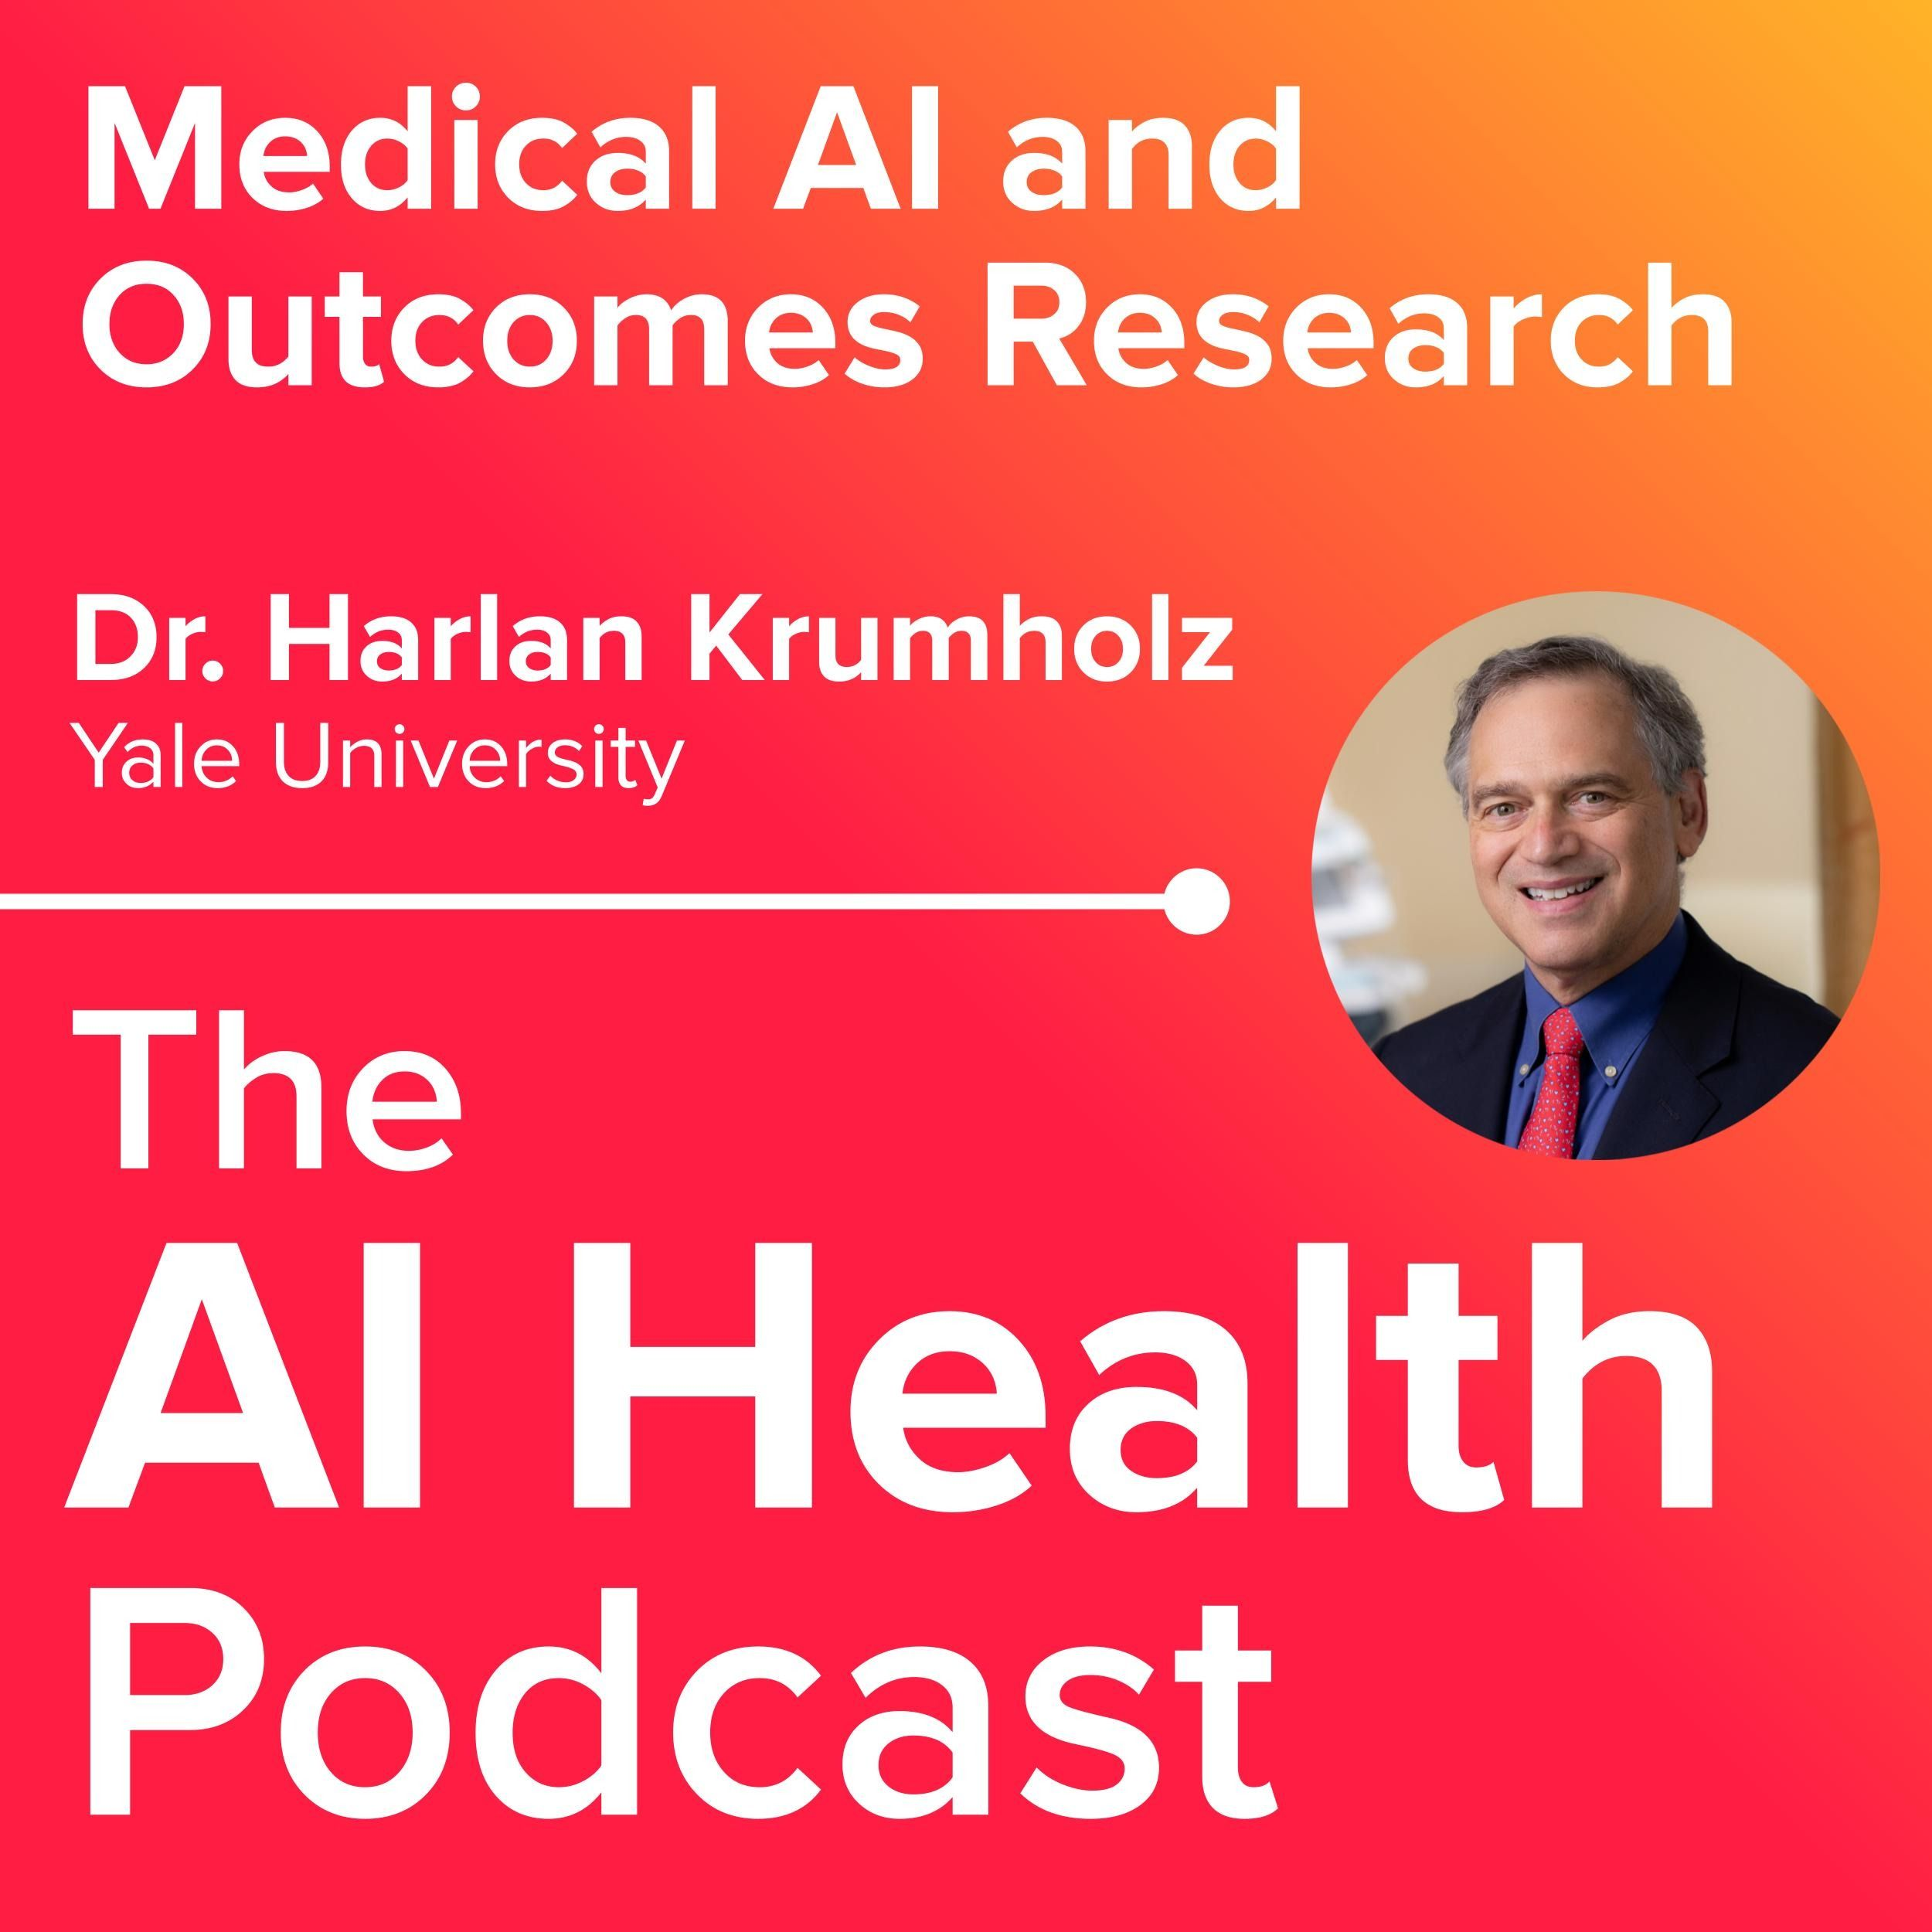 Medical AI and Outcomes Research with Yale's Dr. Harlan Krumholz